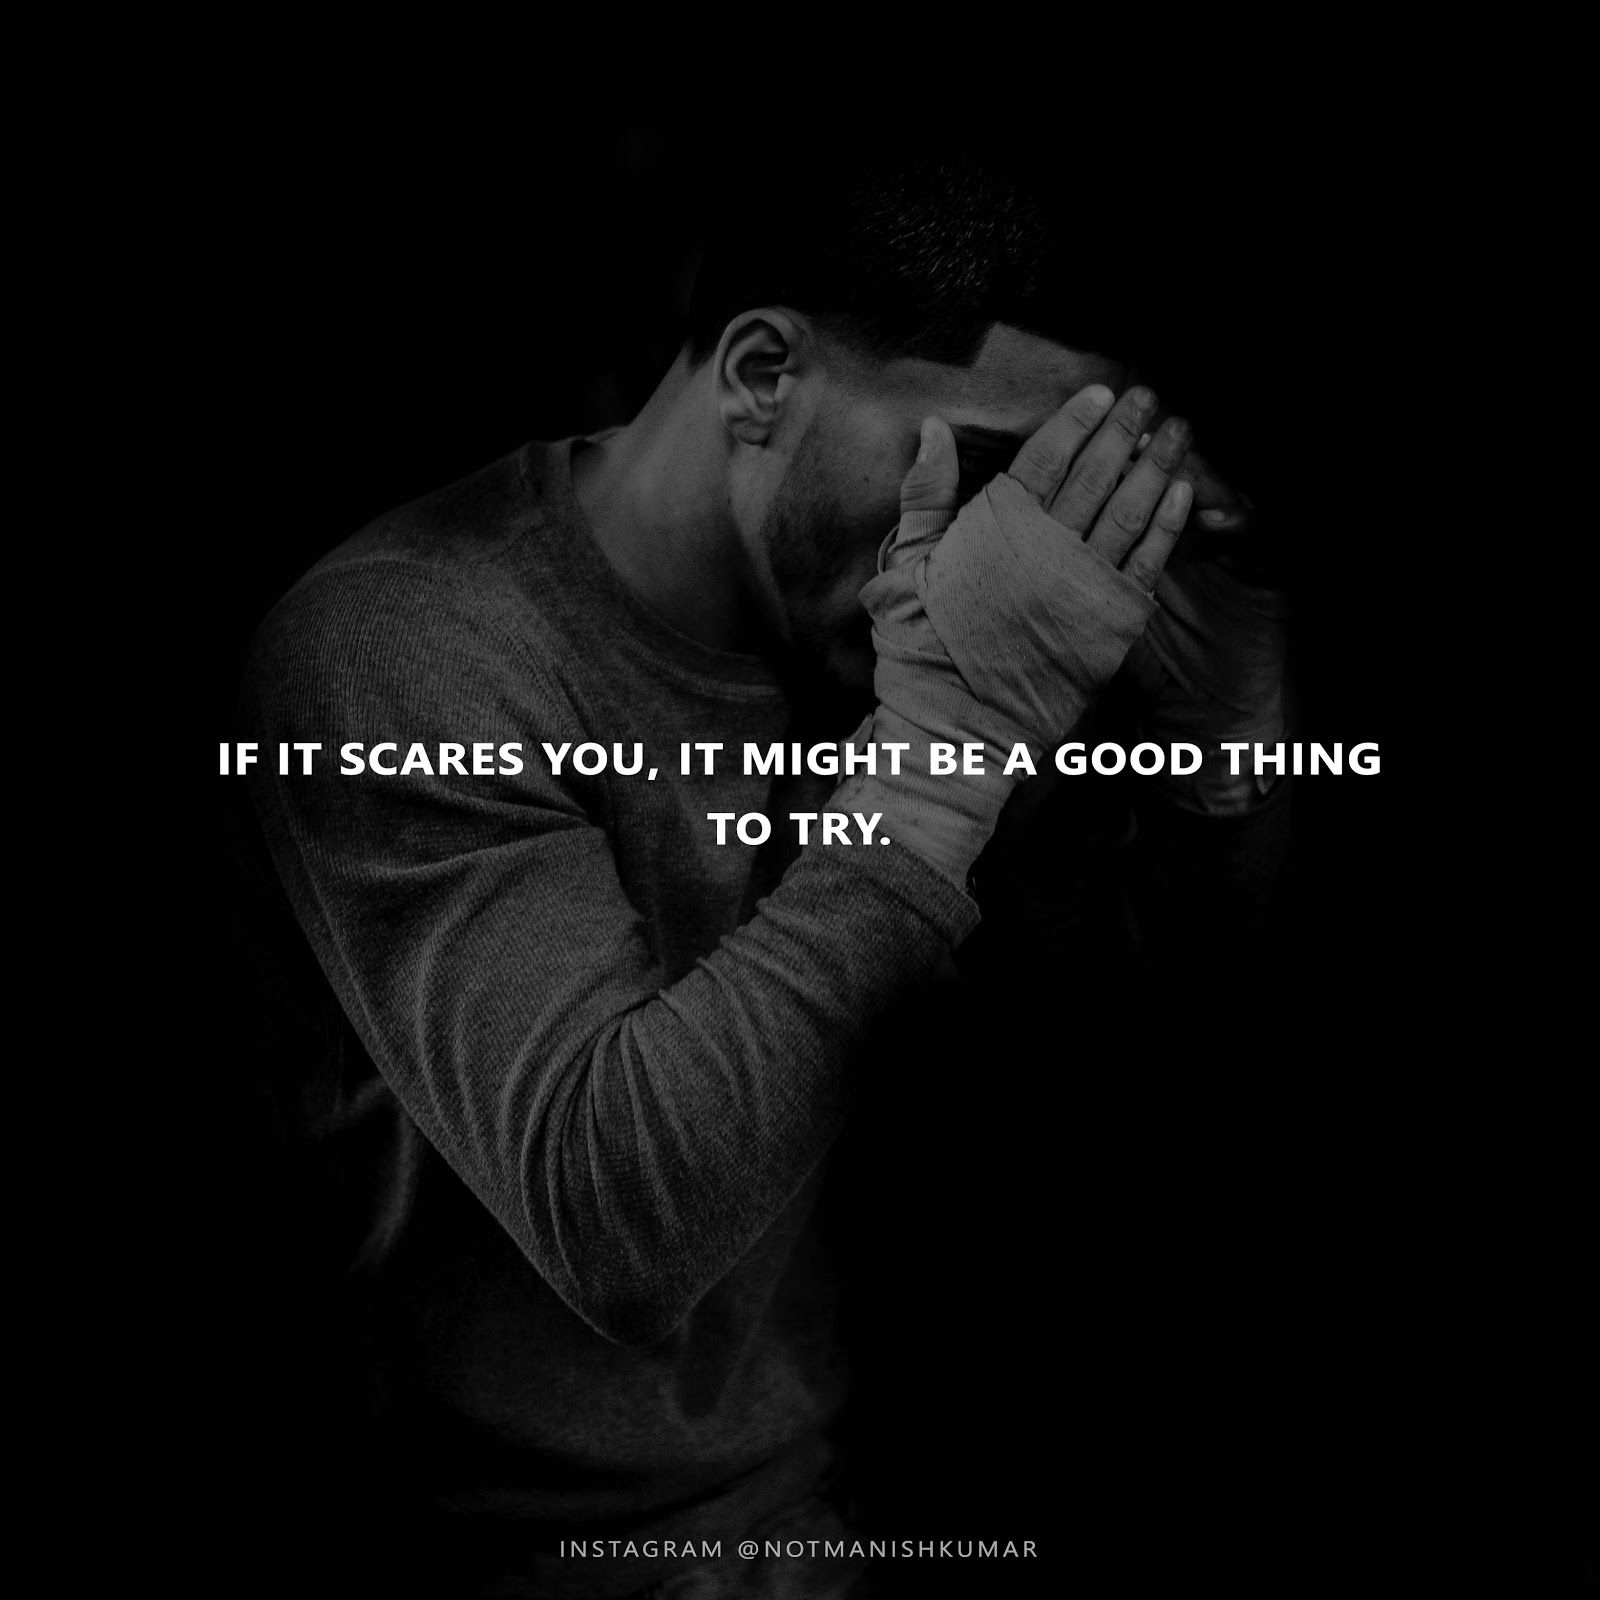 Inspirational quotes about fear Face your fears head on